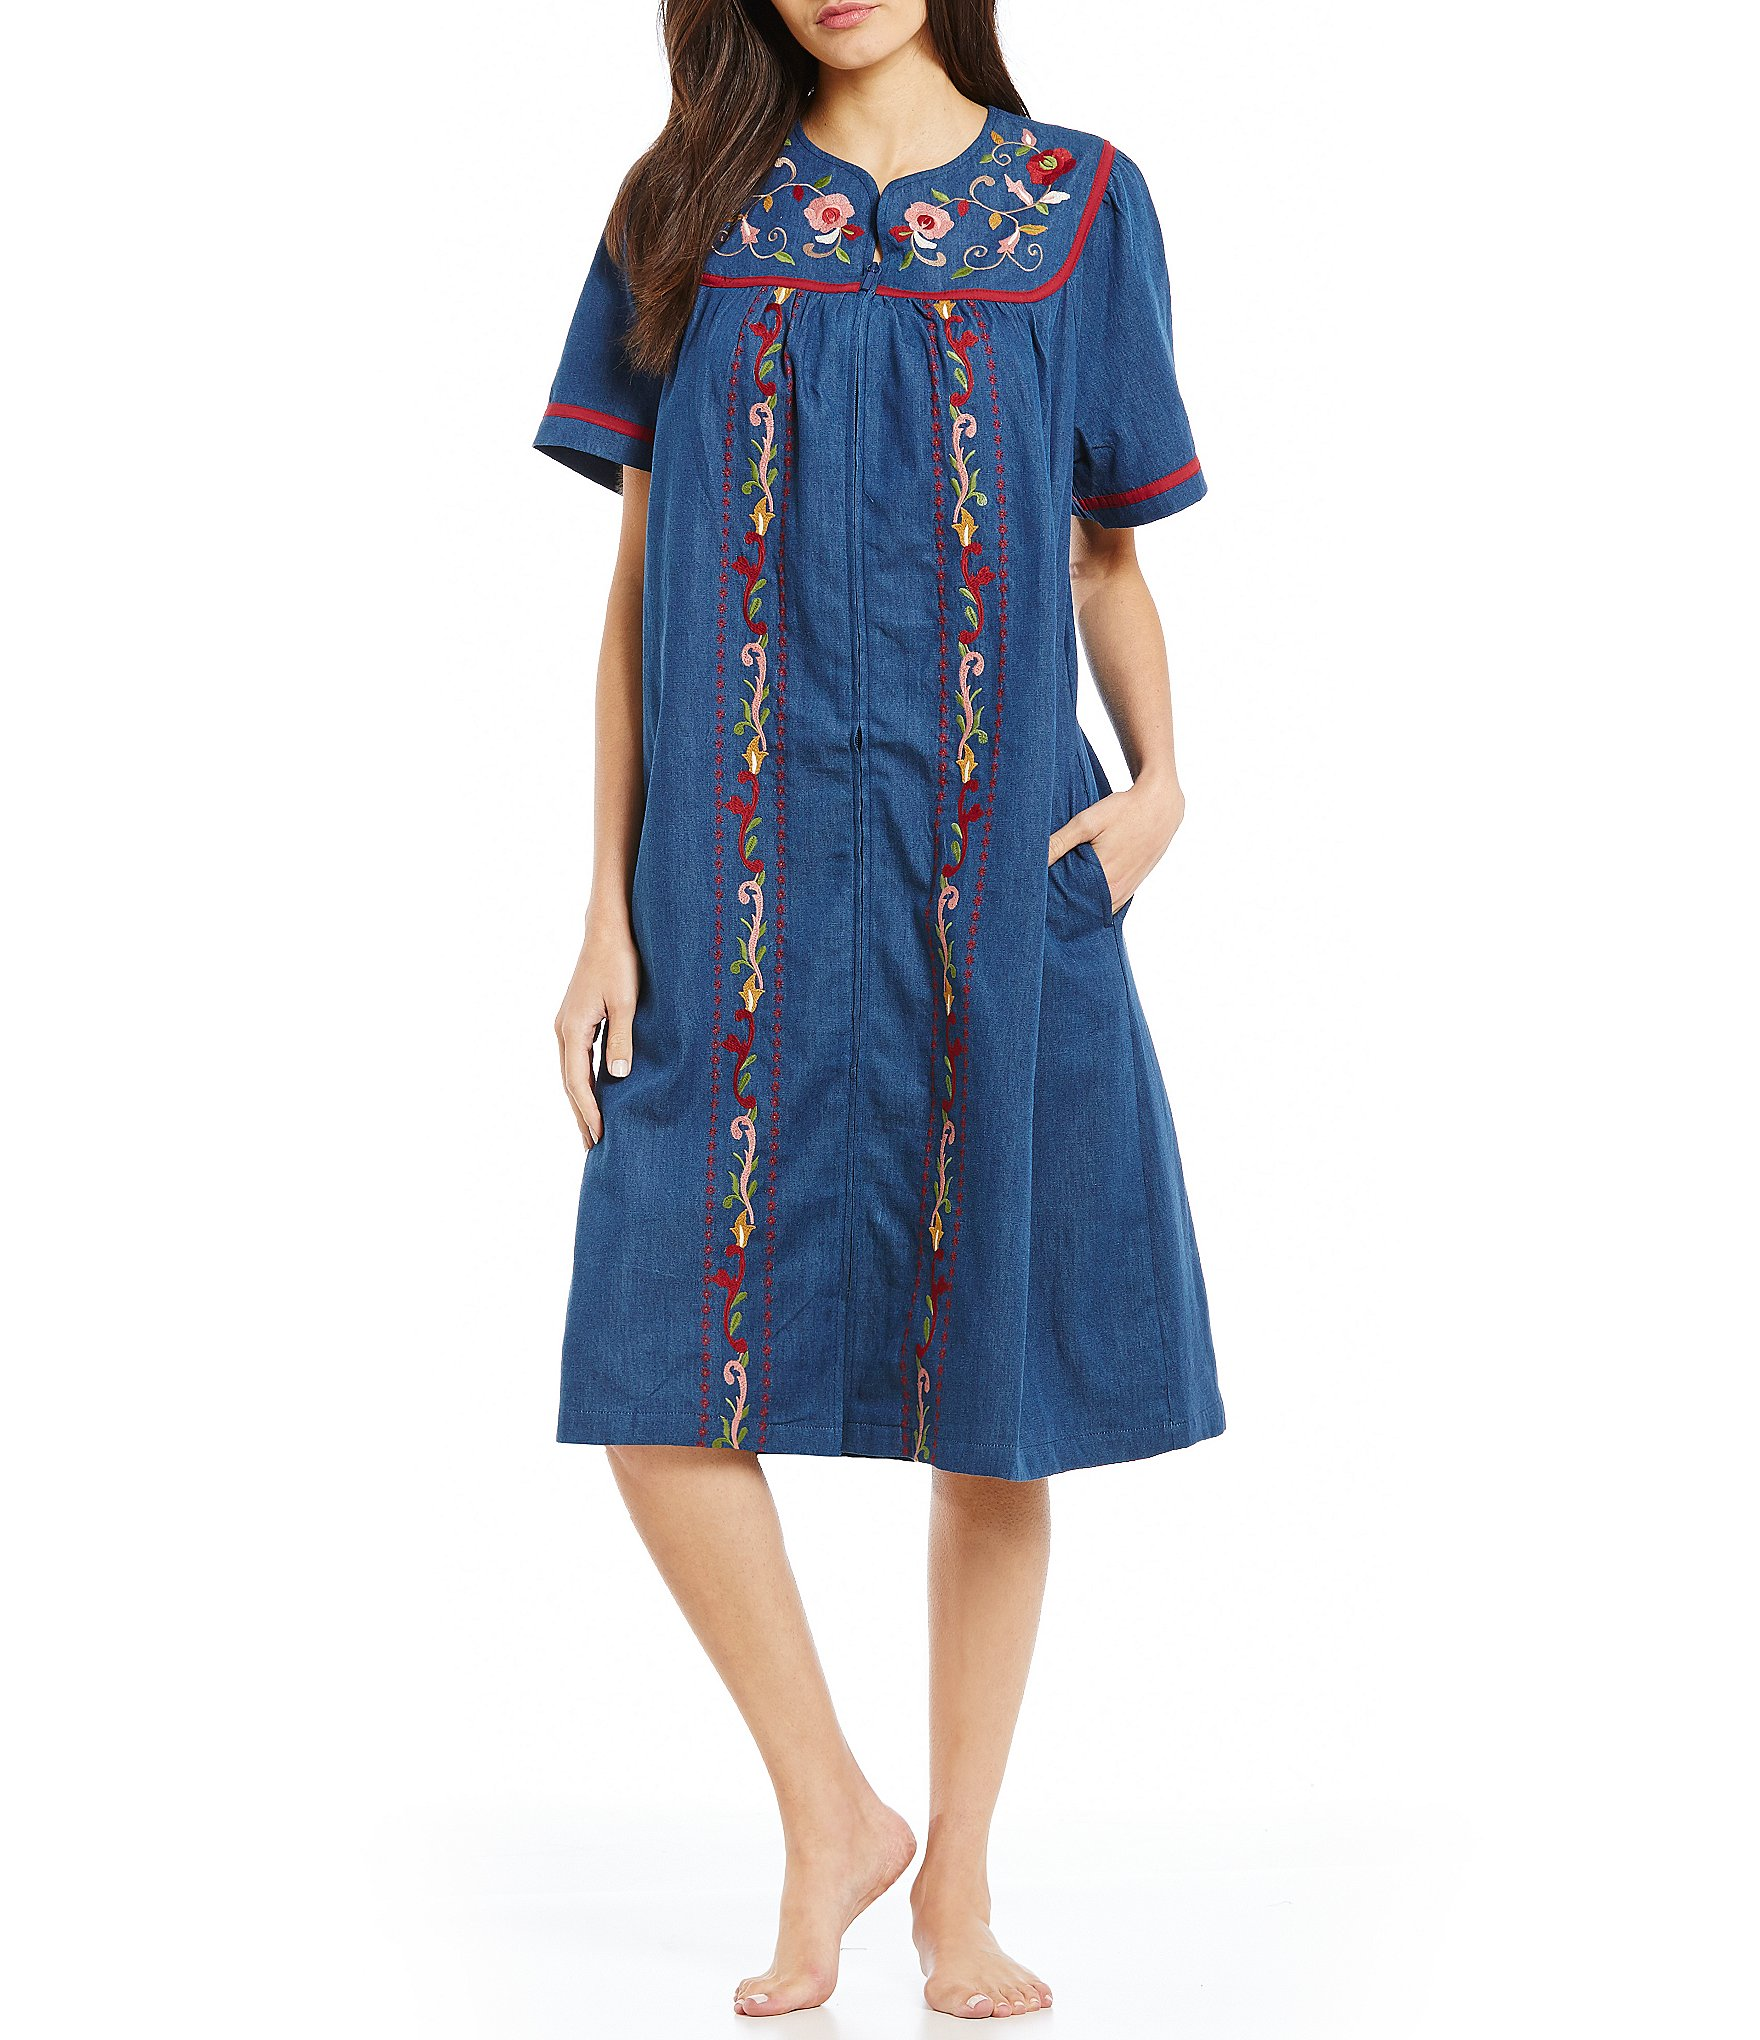 Ivory Patio Dresses & Caftans Dillards